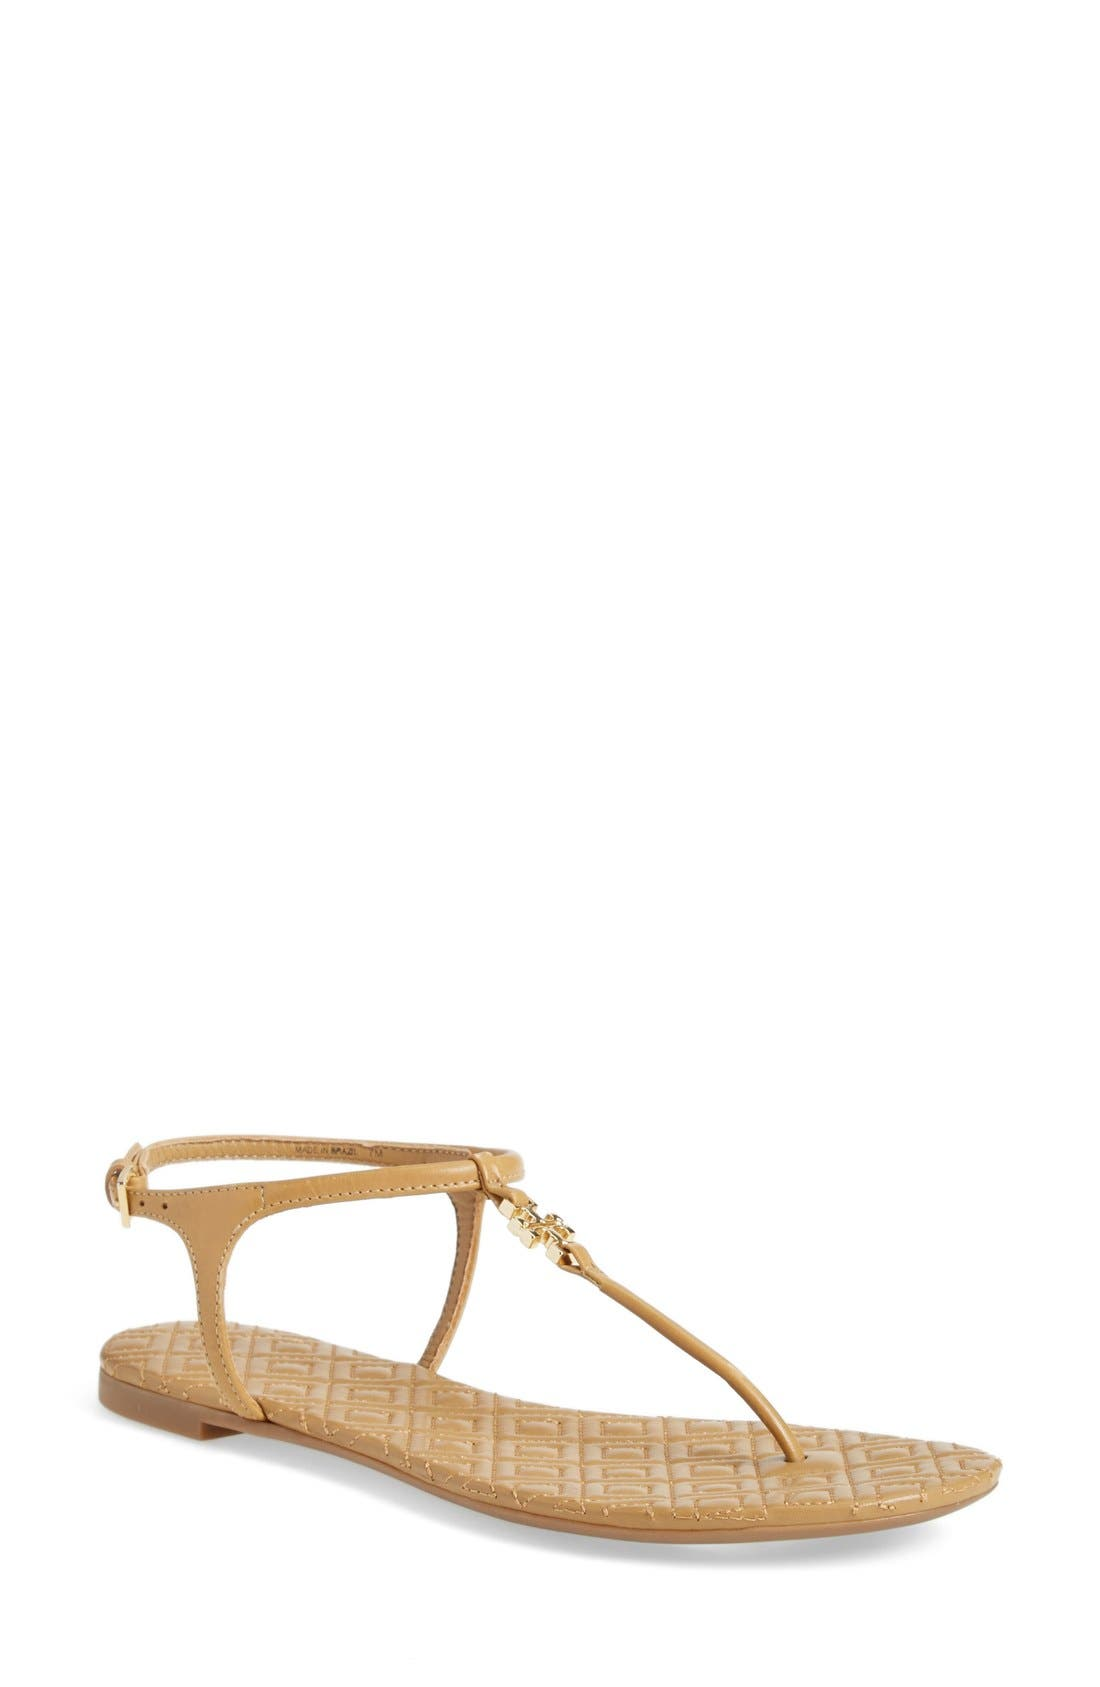 'Marion' Quilted Sandal,                         Main,                         color, Sand Leather